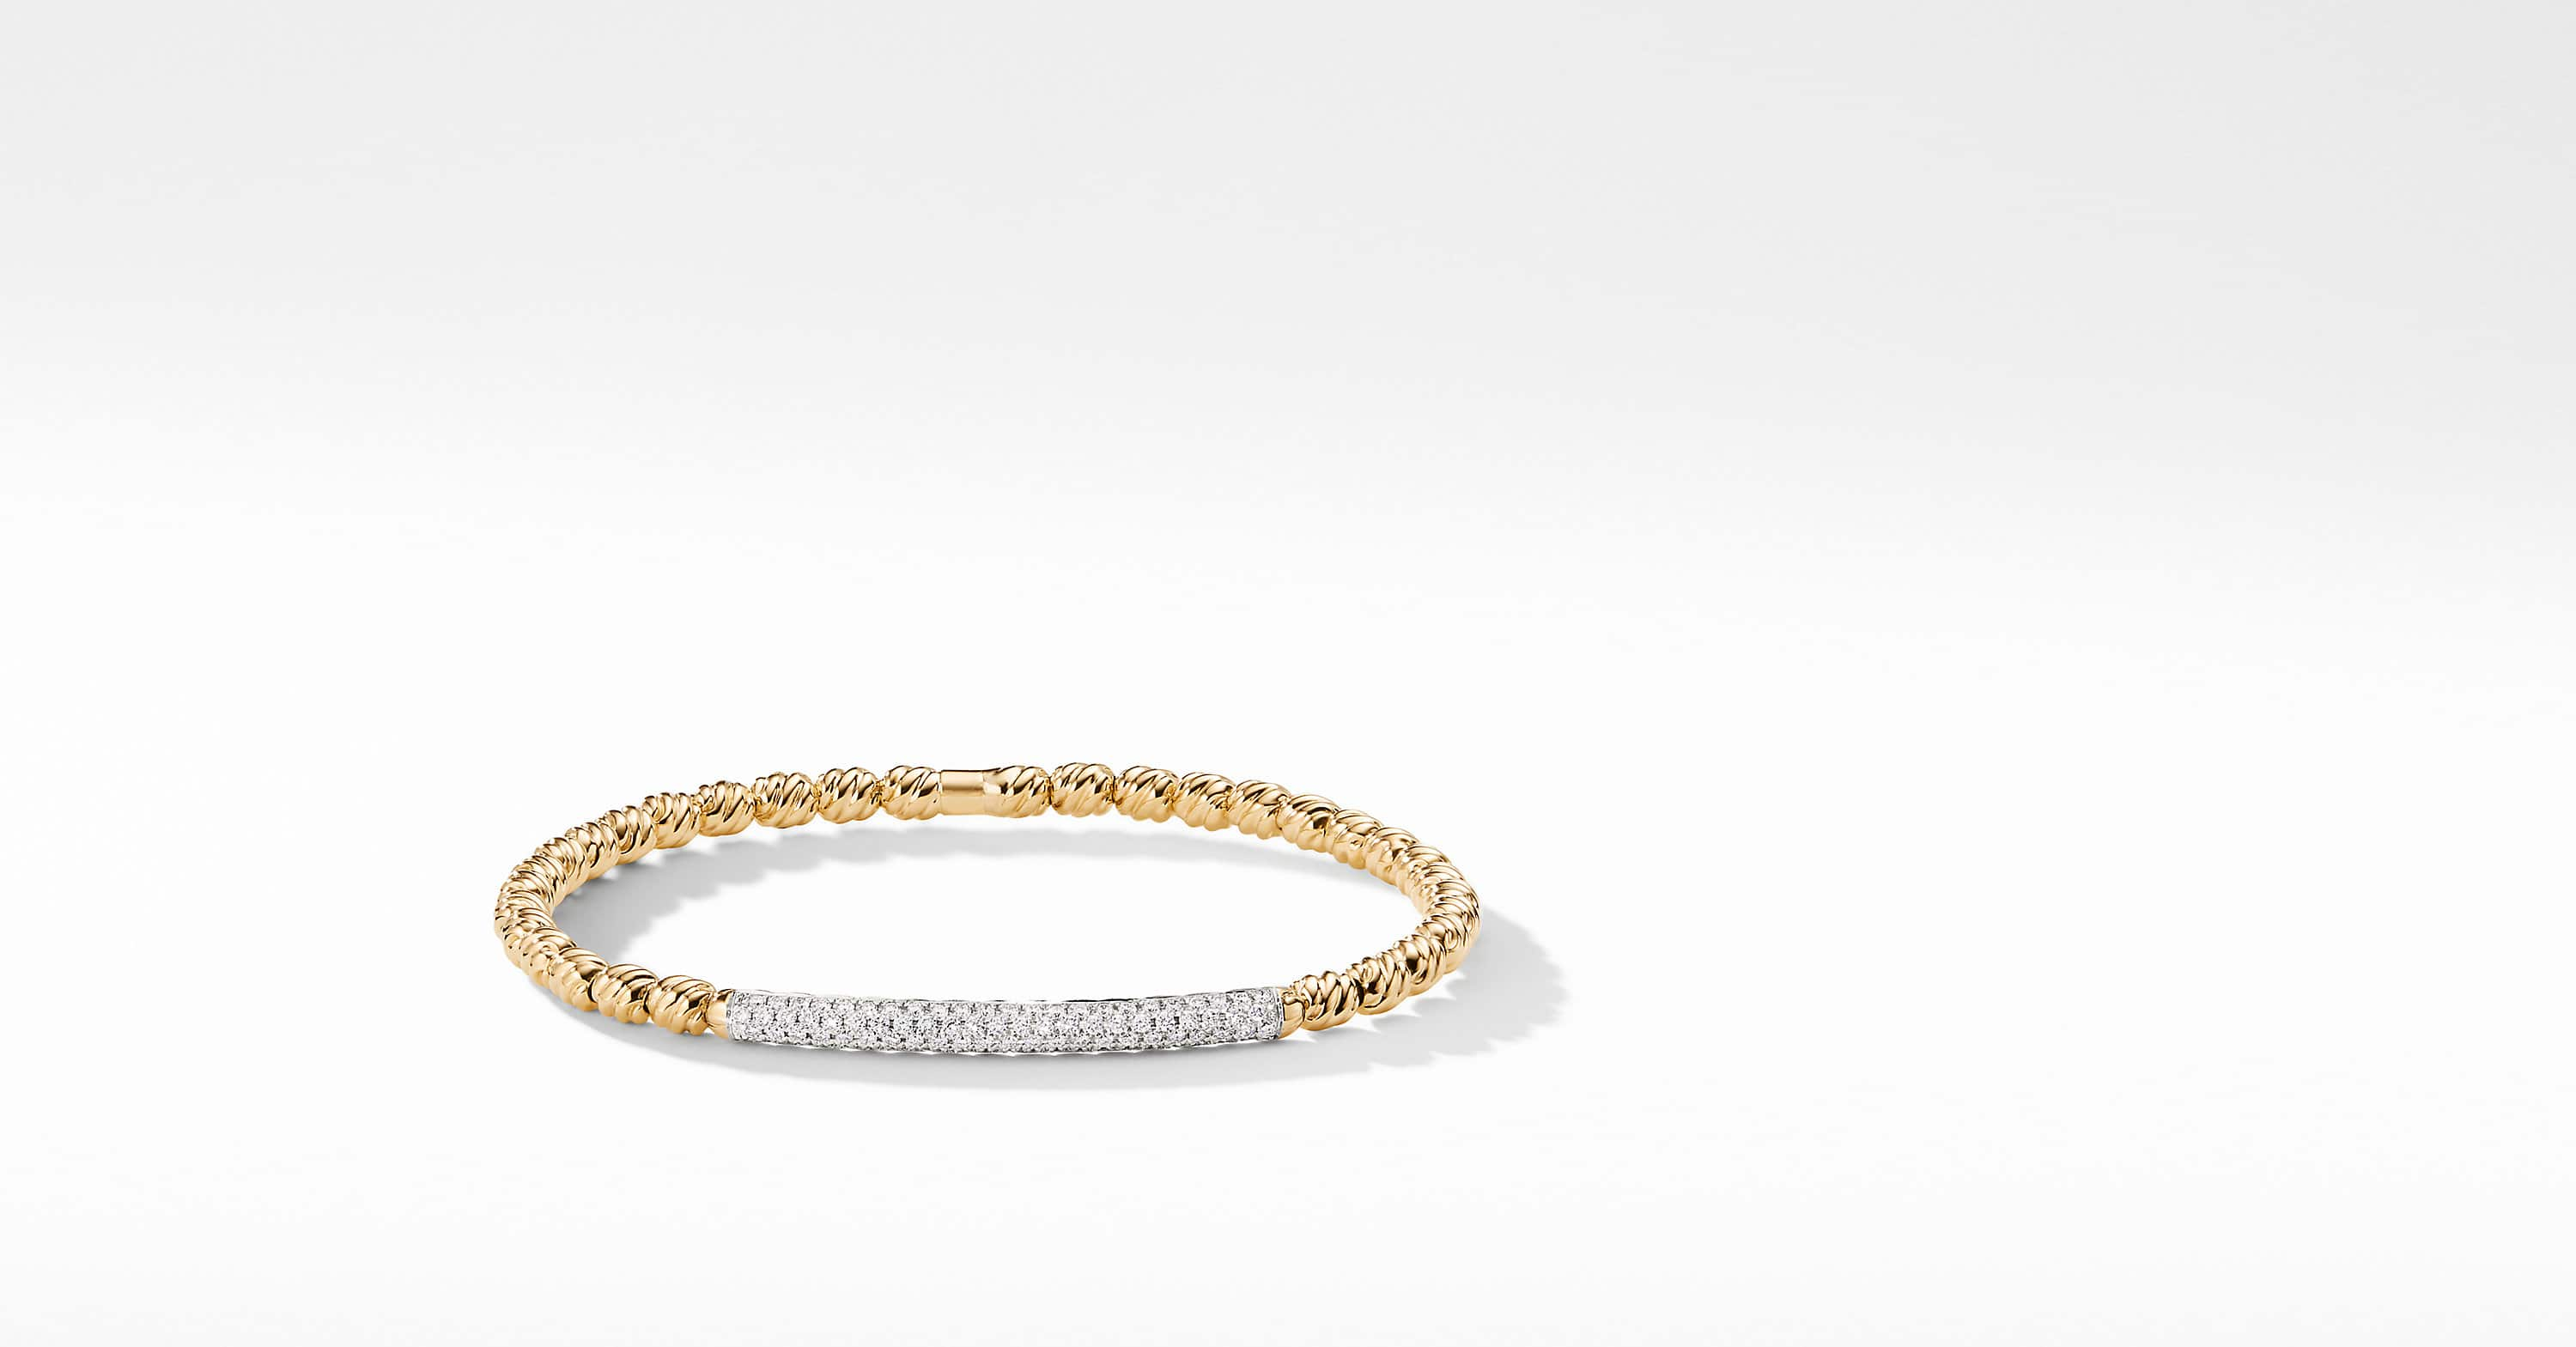 Petite Pavé Bracelet with Diamonds in 18K Gold